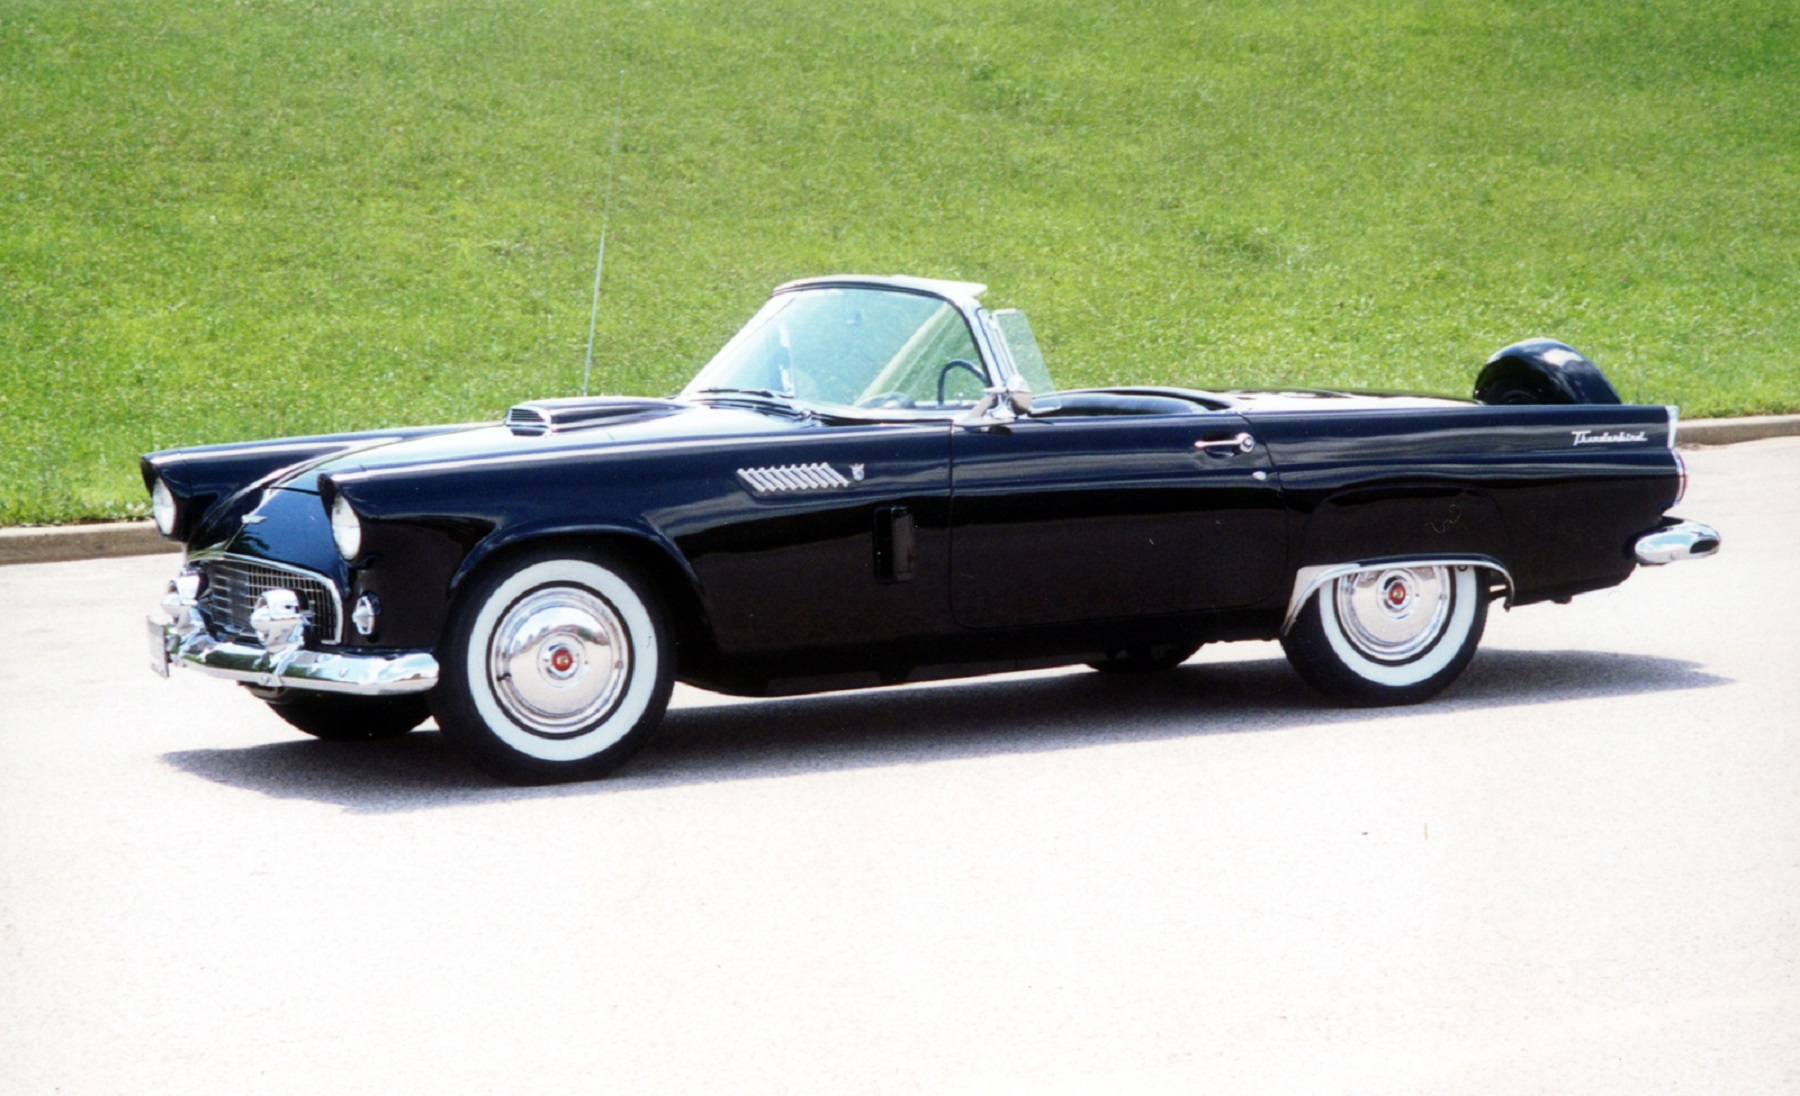 1956 Ford Thunderbird Back to Brand New Quality Classic Classics